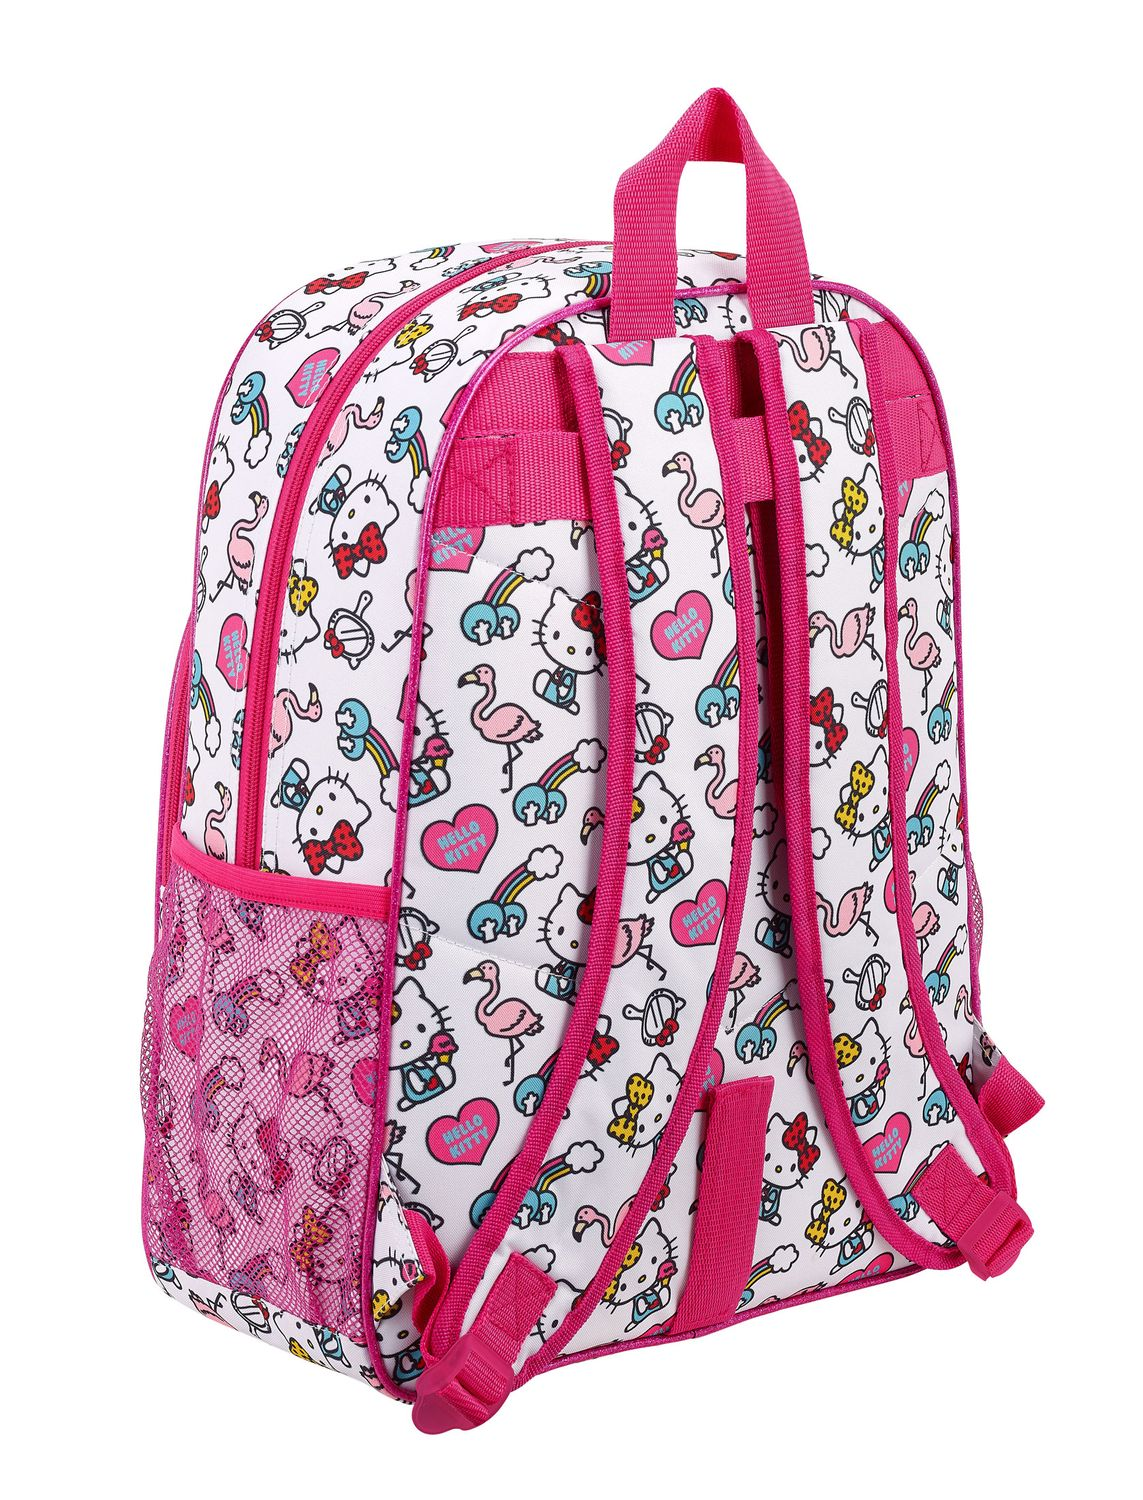 Hello Kitty Girl Gang Pink Backpack 42cm – image 2